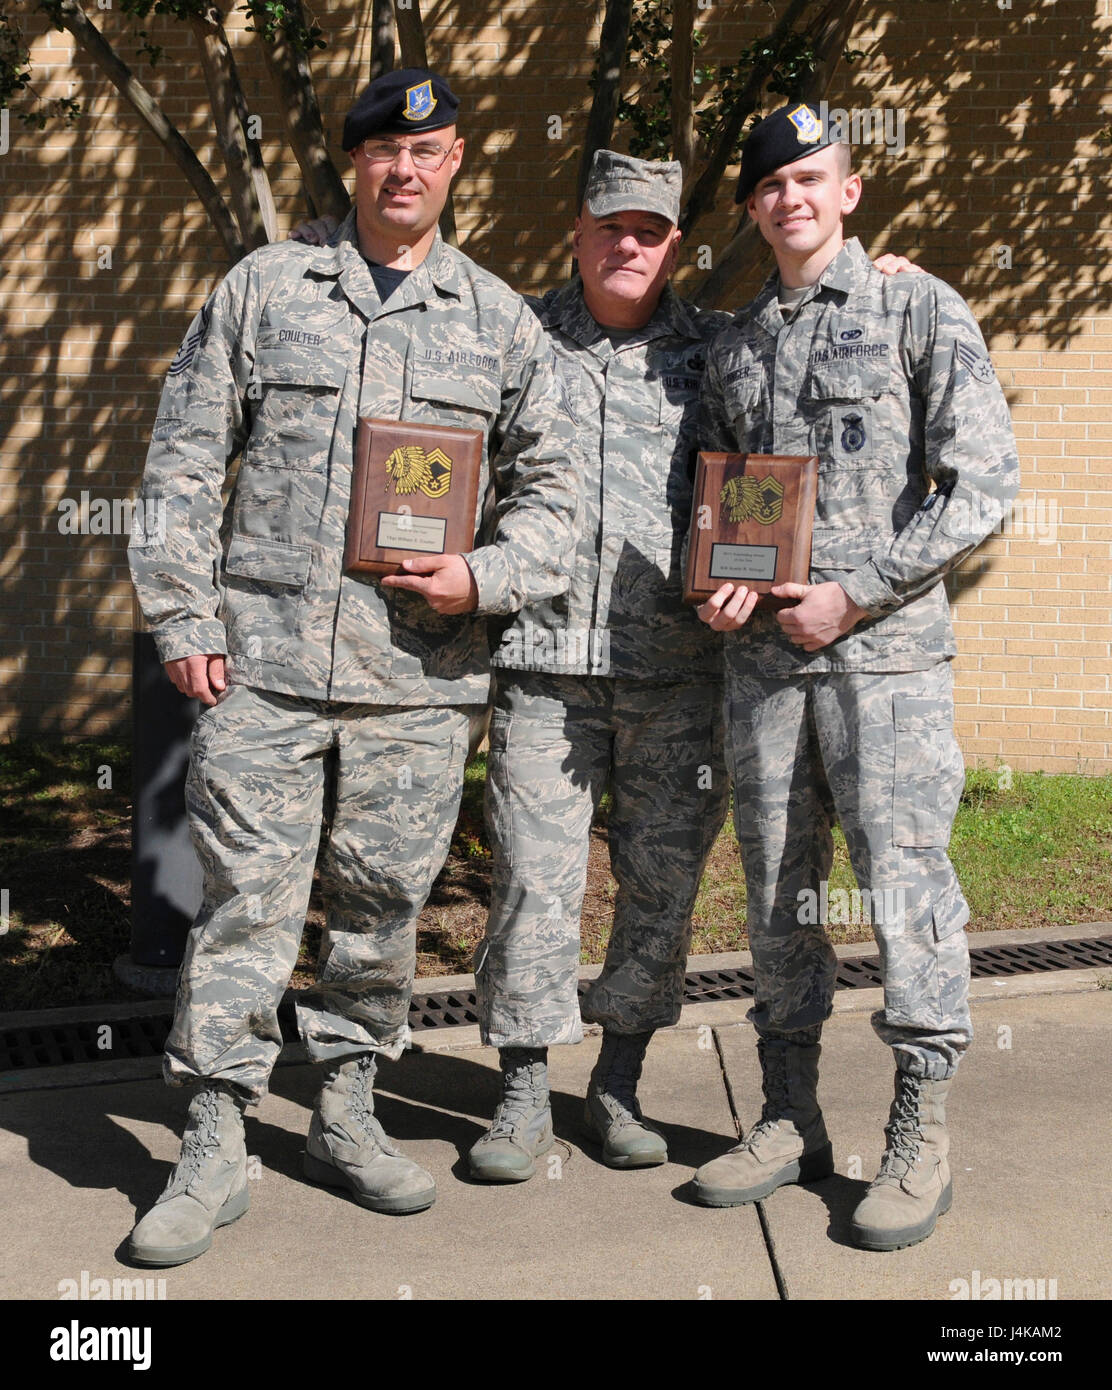 187. Fighter Wing, Montgomery Regional Airport, AL präsentiert herausragende Airmen of the Year Award MSgt Stockbild